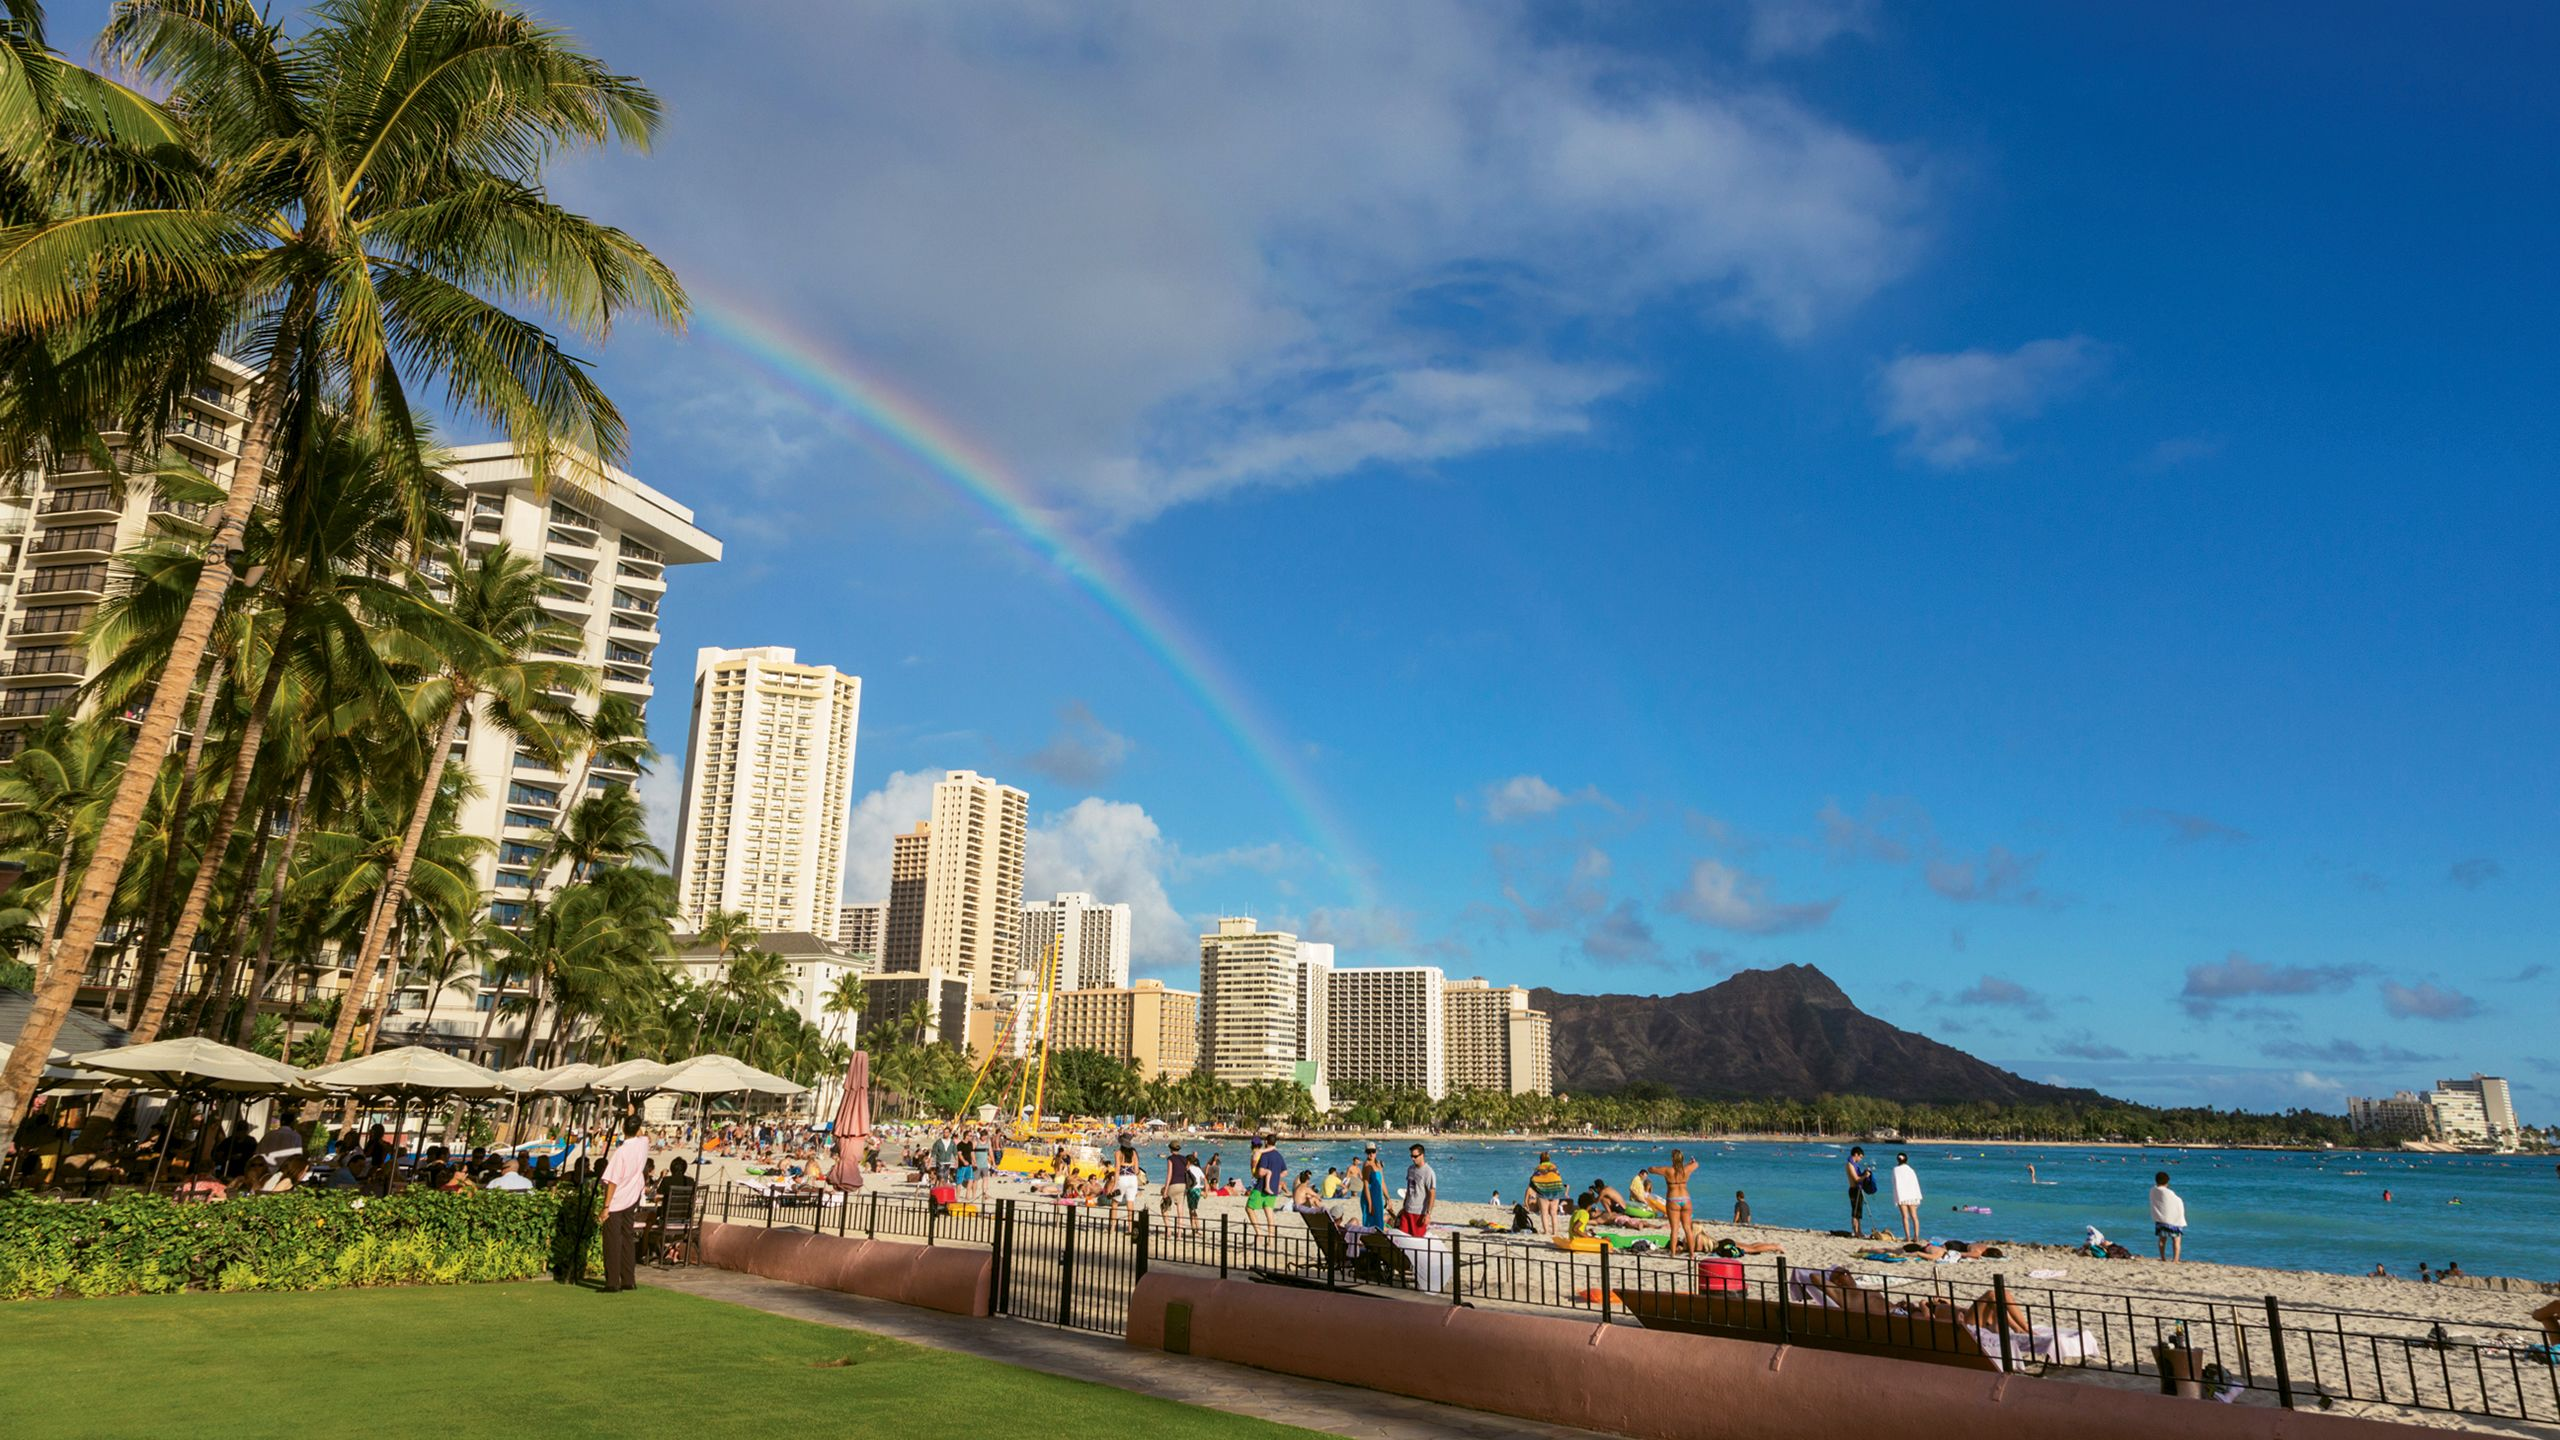 Hawaii has gone from 8 million visitors a year to 10 million visitors a year without adding much hotel stock, and vacation rentals have absorbed much of the new traffic. Photo by Tor Johnson/ HTA